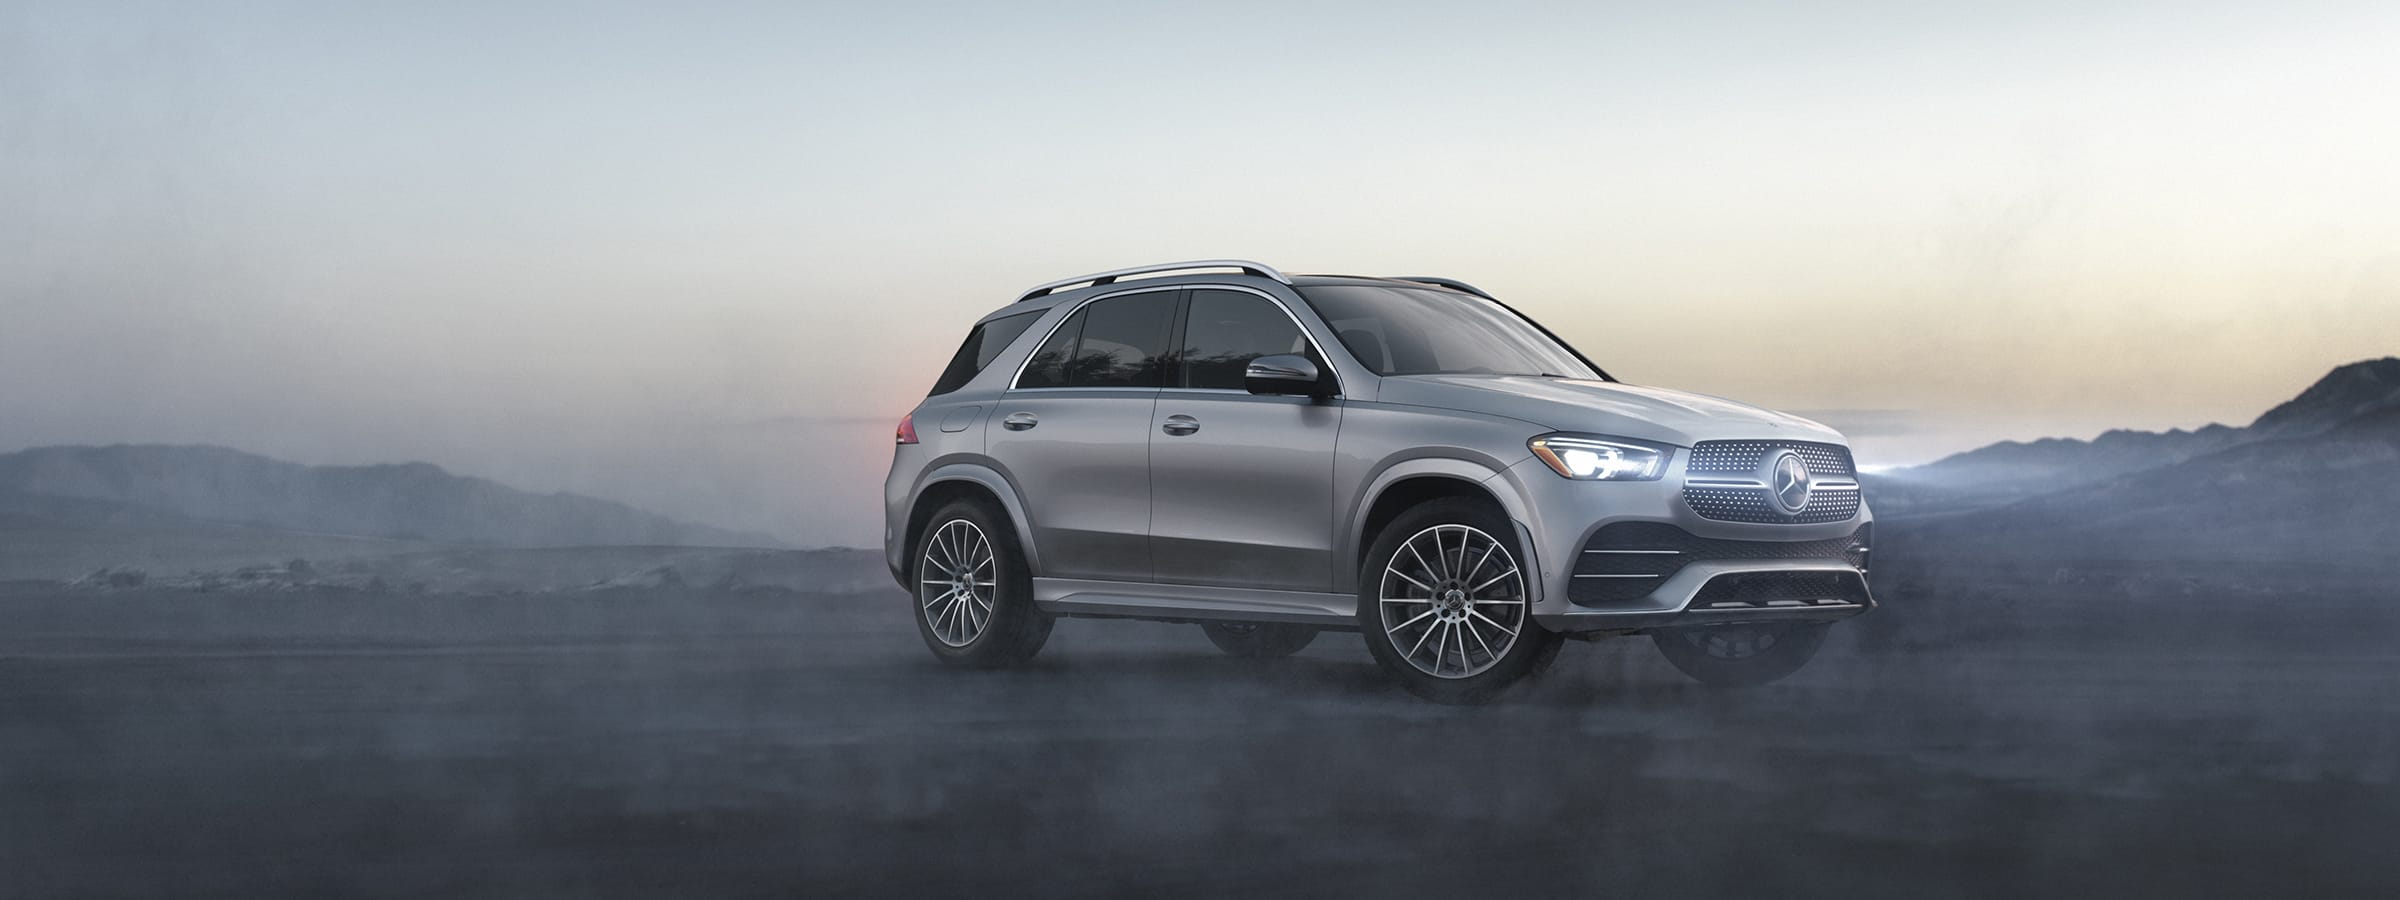 Specs and price of 2022 Mercedes Benz GLE Class (SUV)in Nigeria